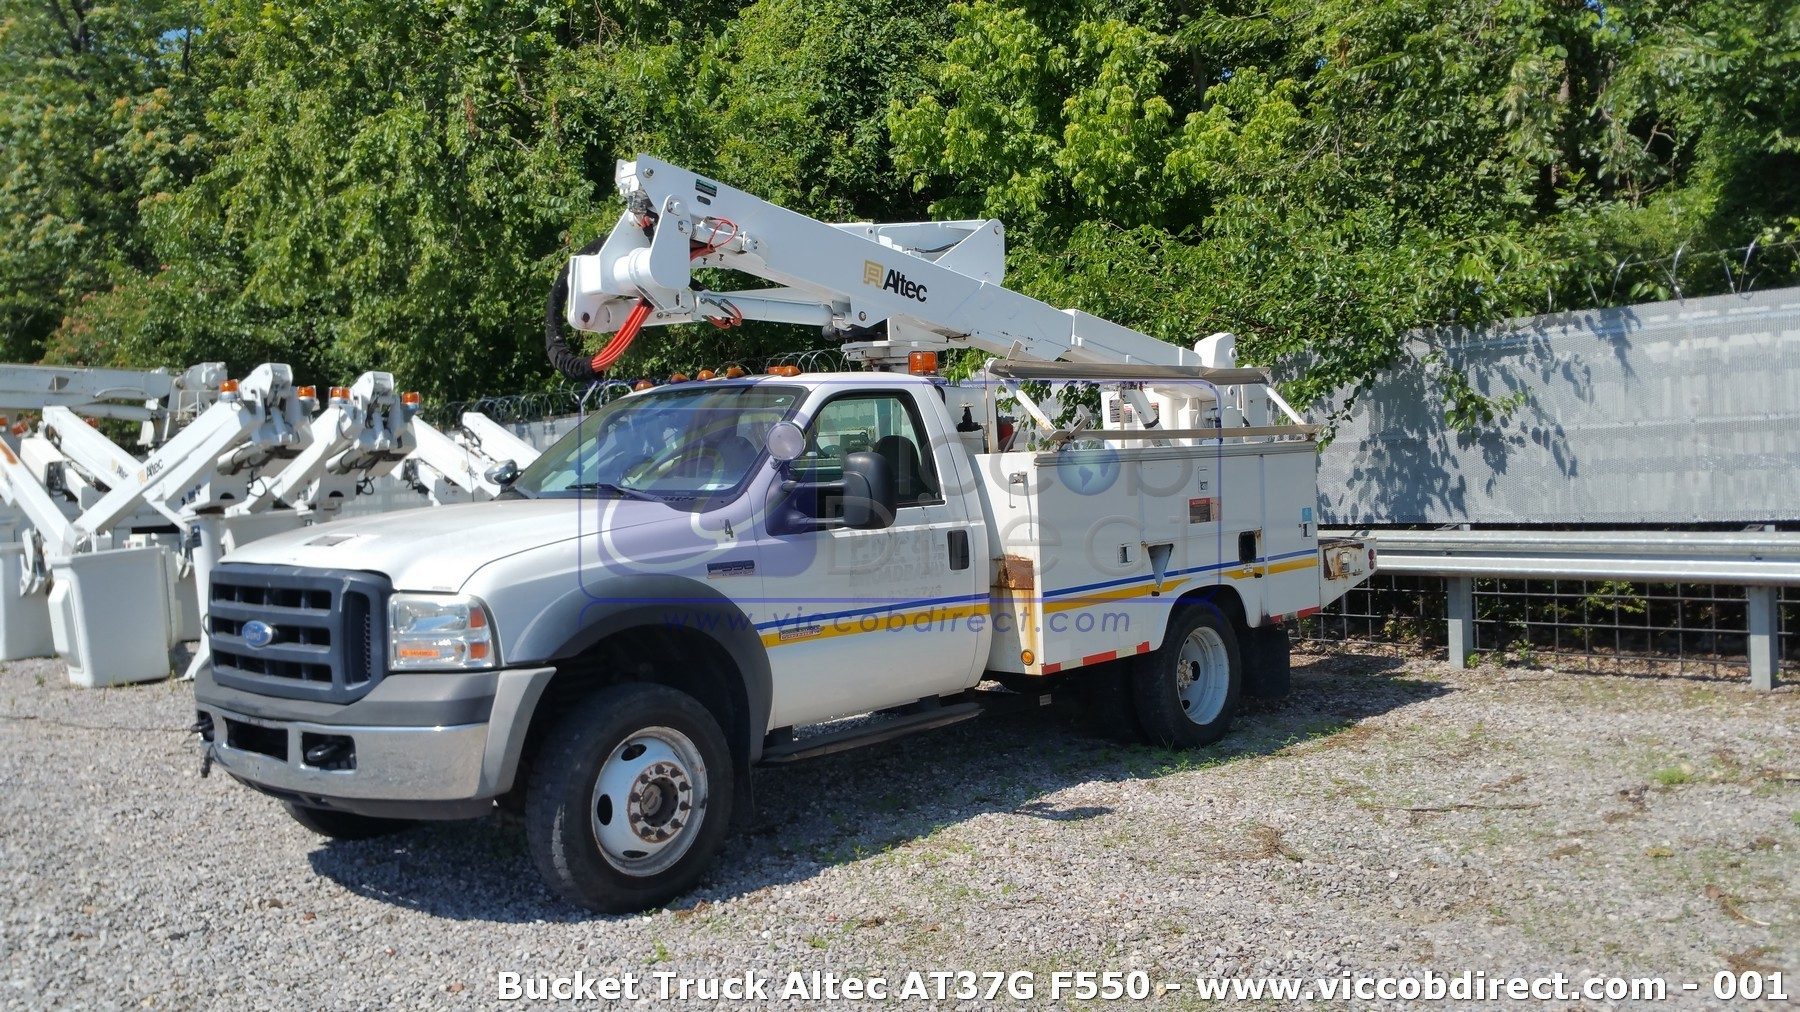 Bucket Truck Ford F550 with Lift Altec AT37G - Great Deal!!!